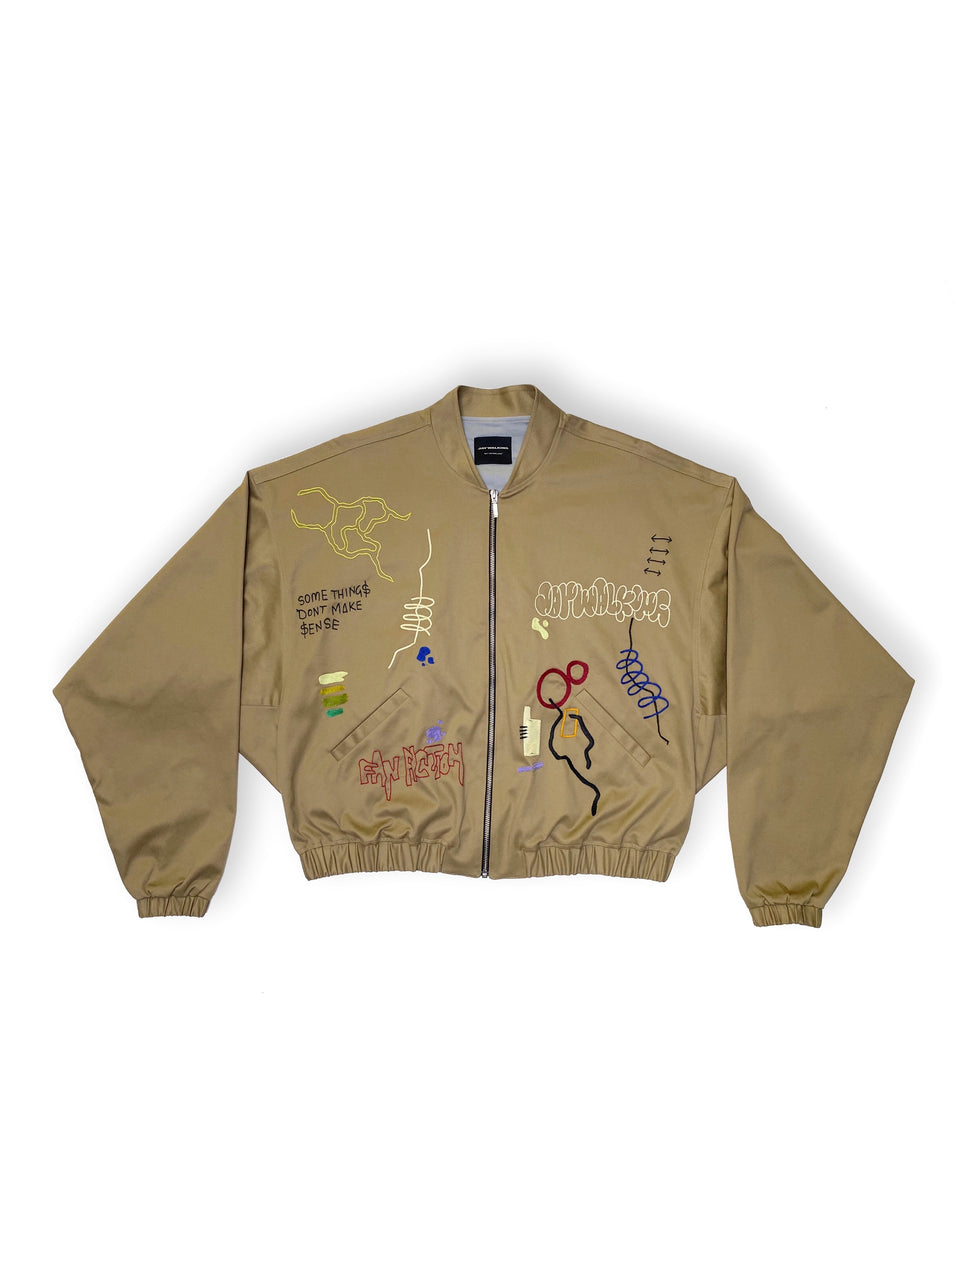 ANTEATER BOMBER JACKET^ ONE OF ONE